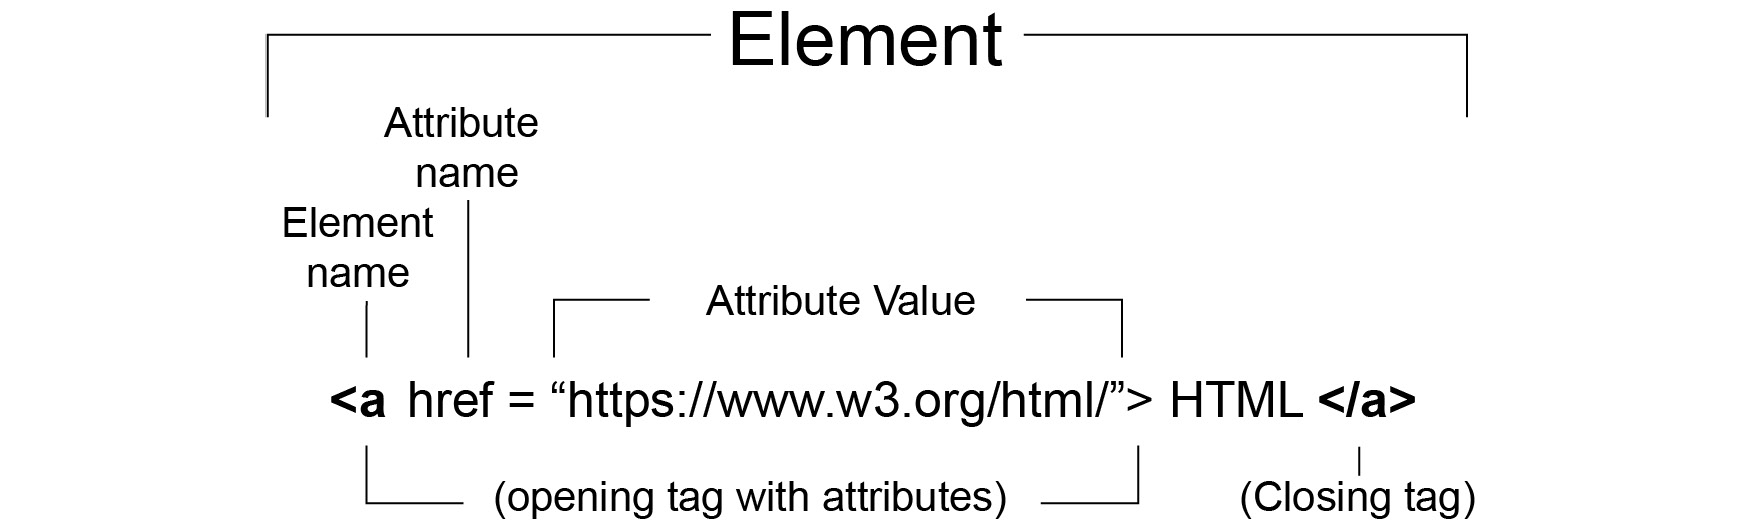 Figure 1.4: HTML element representation with tag attributes